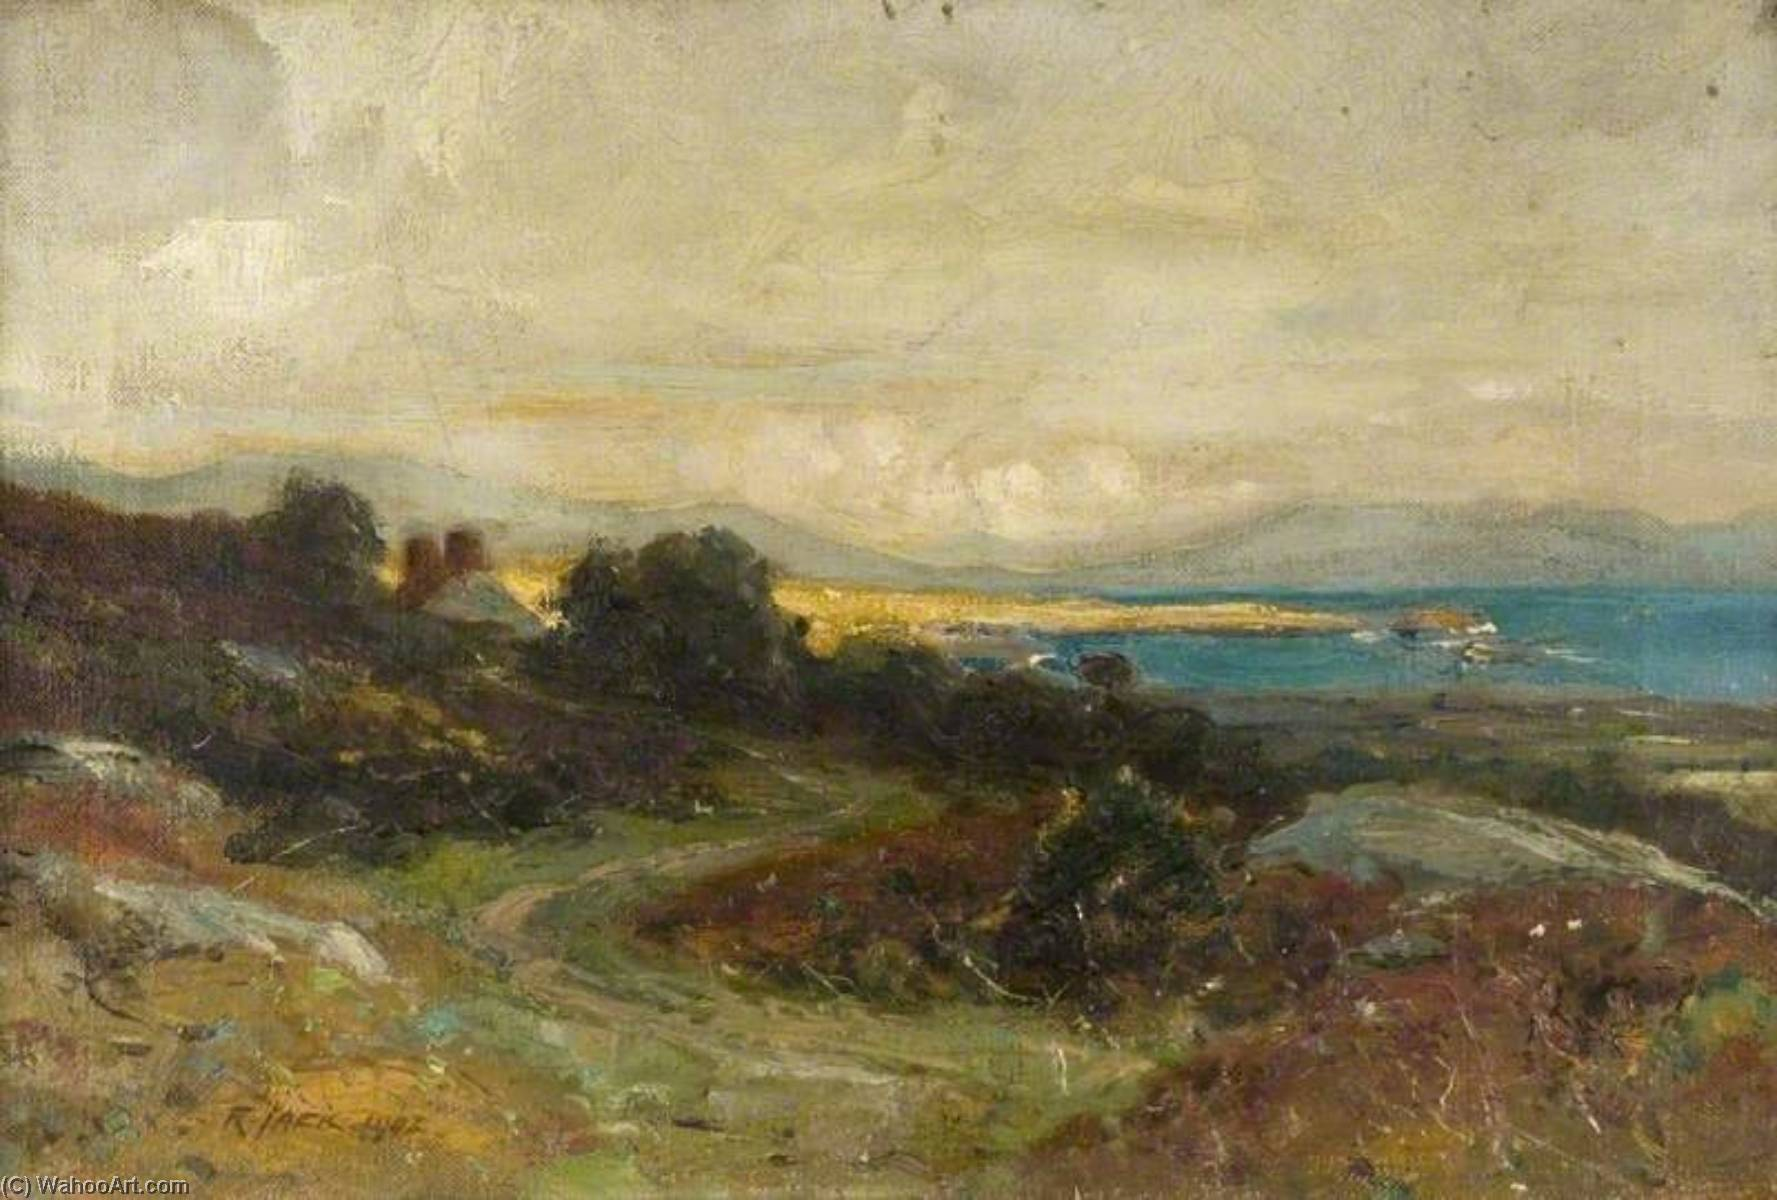 irish landschaft von Richard Jack (1866-1952, United Kingdom) | WahooArt.com